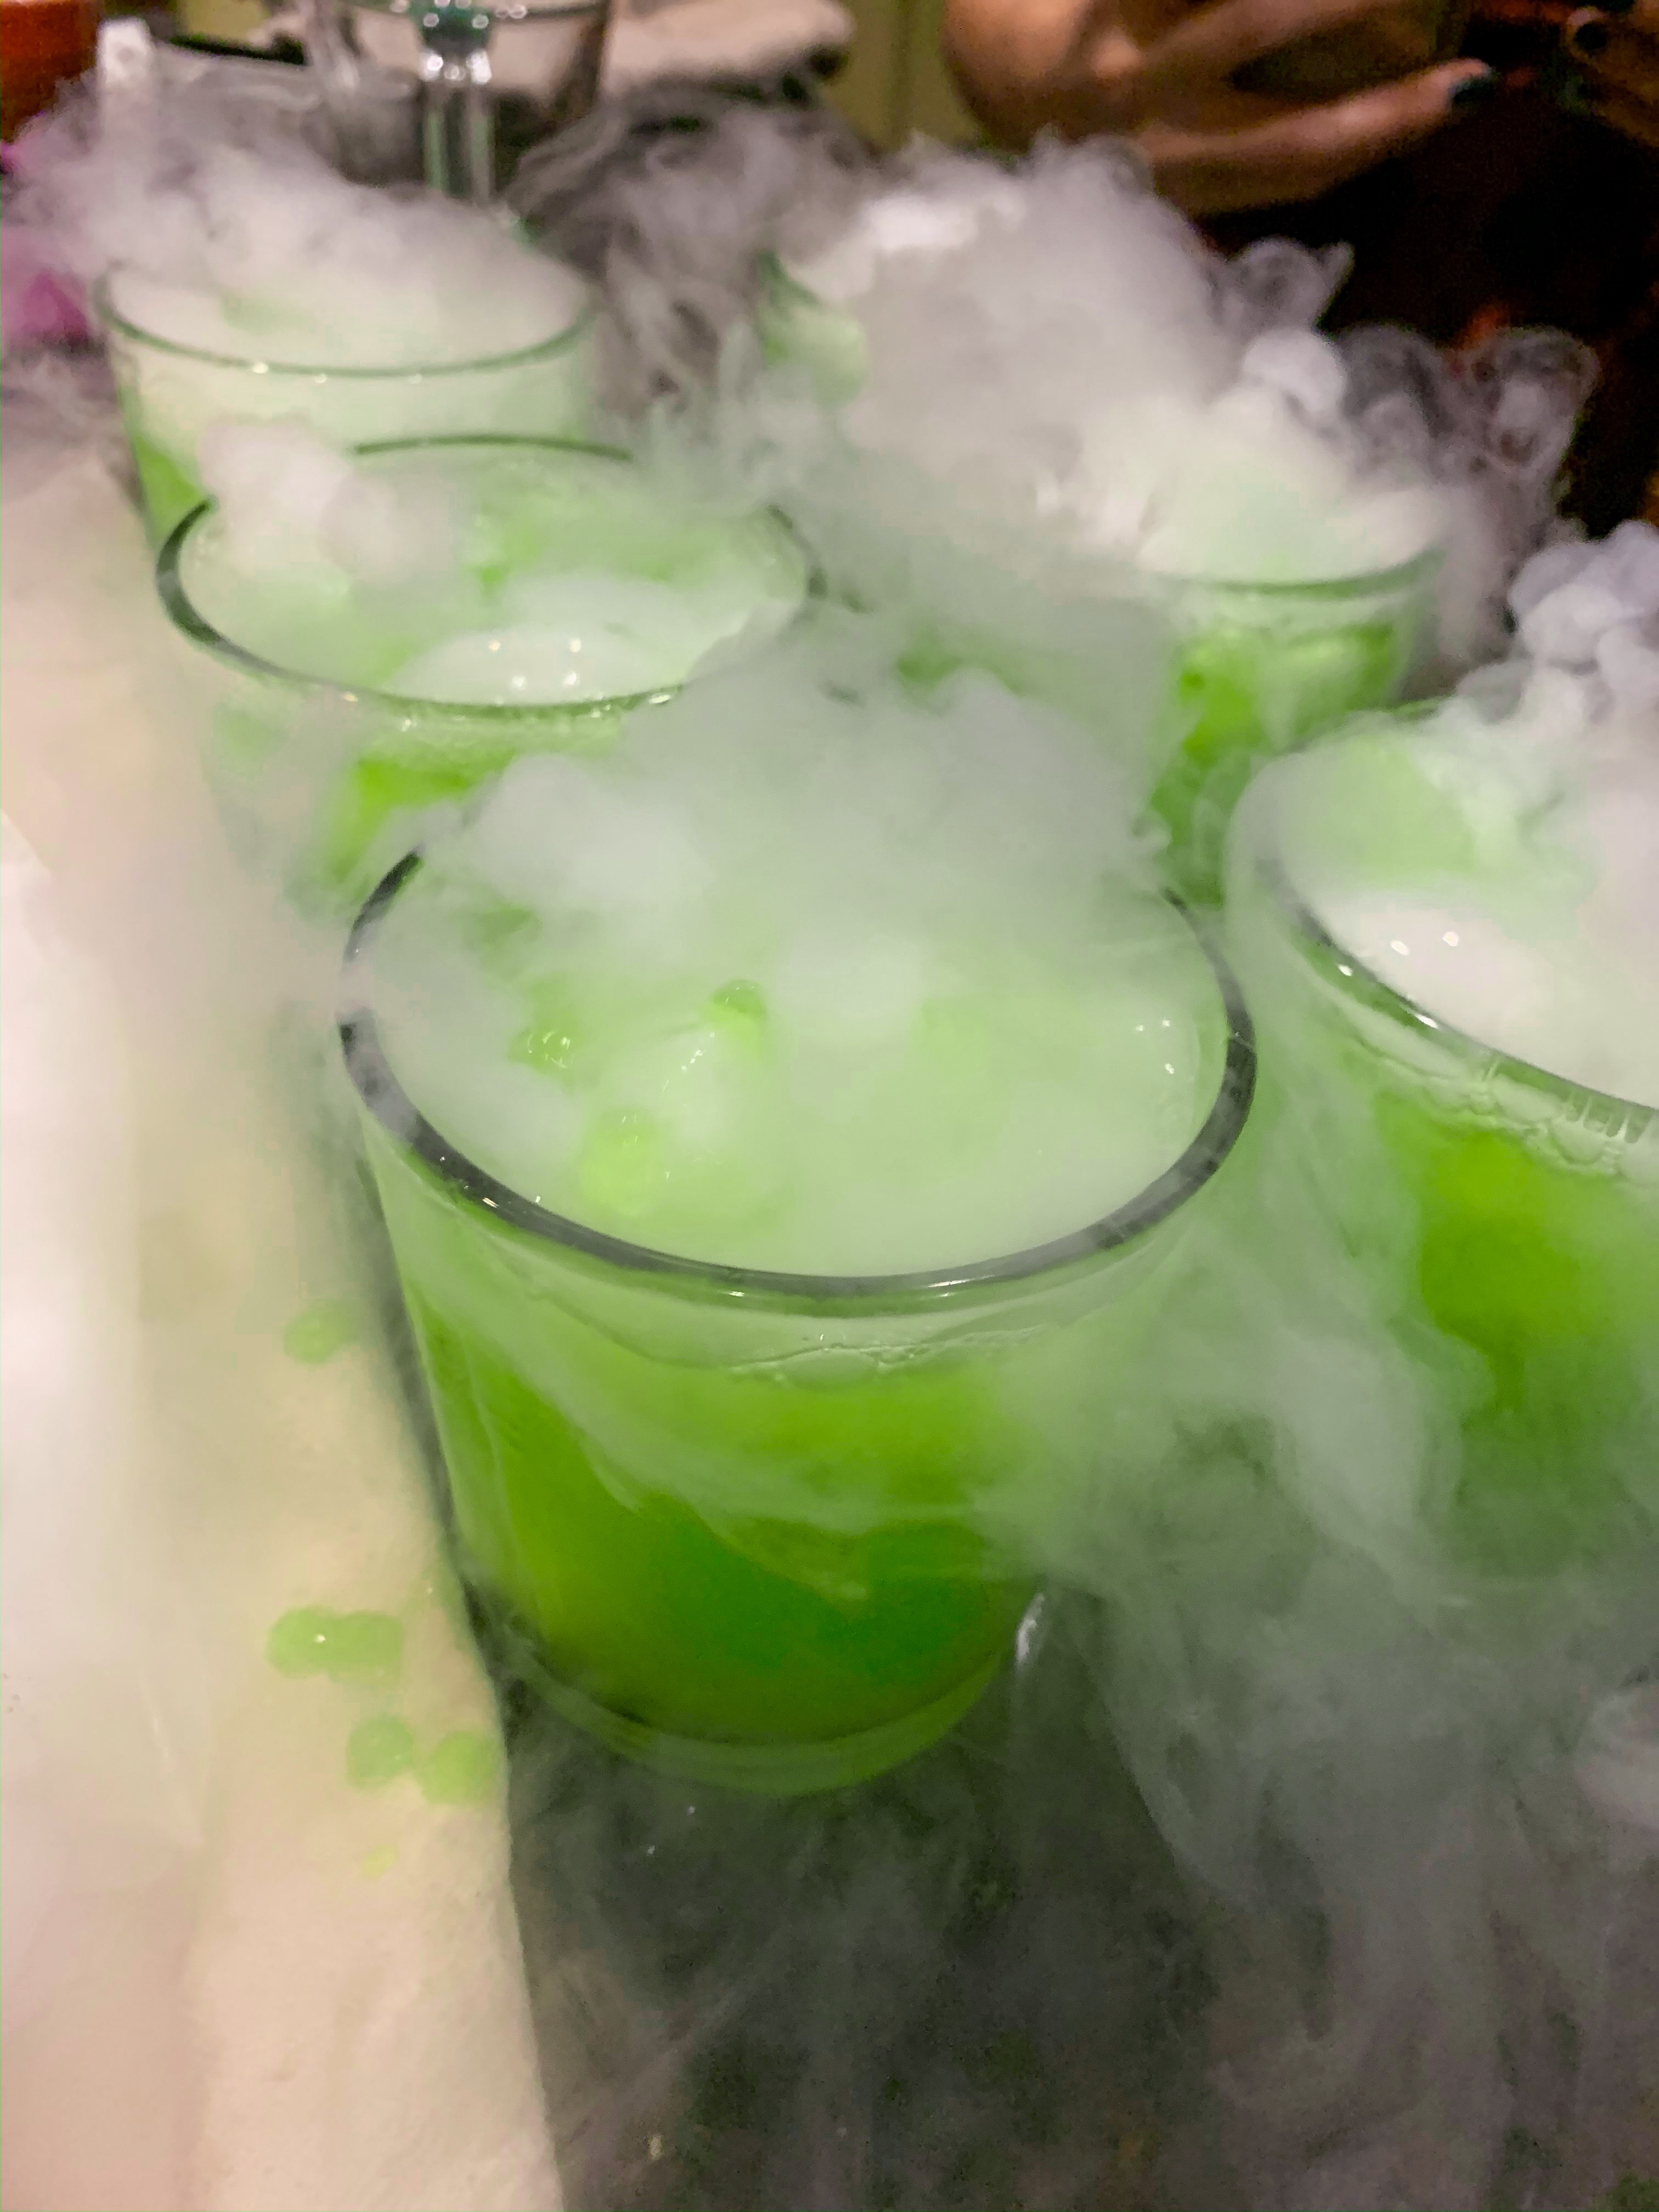 How to Safely Use Dry Ice in Drinks